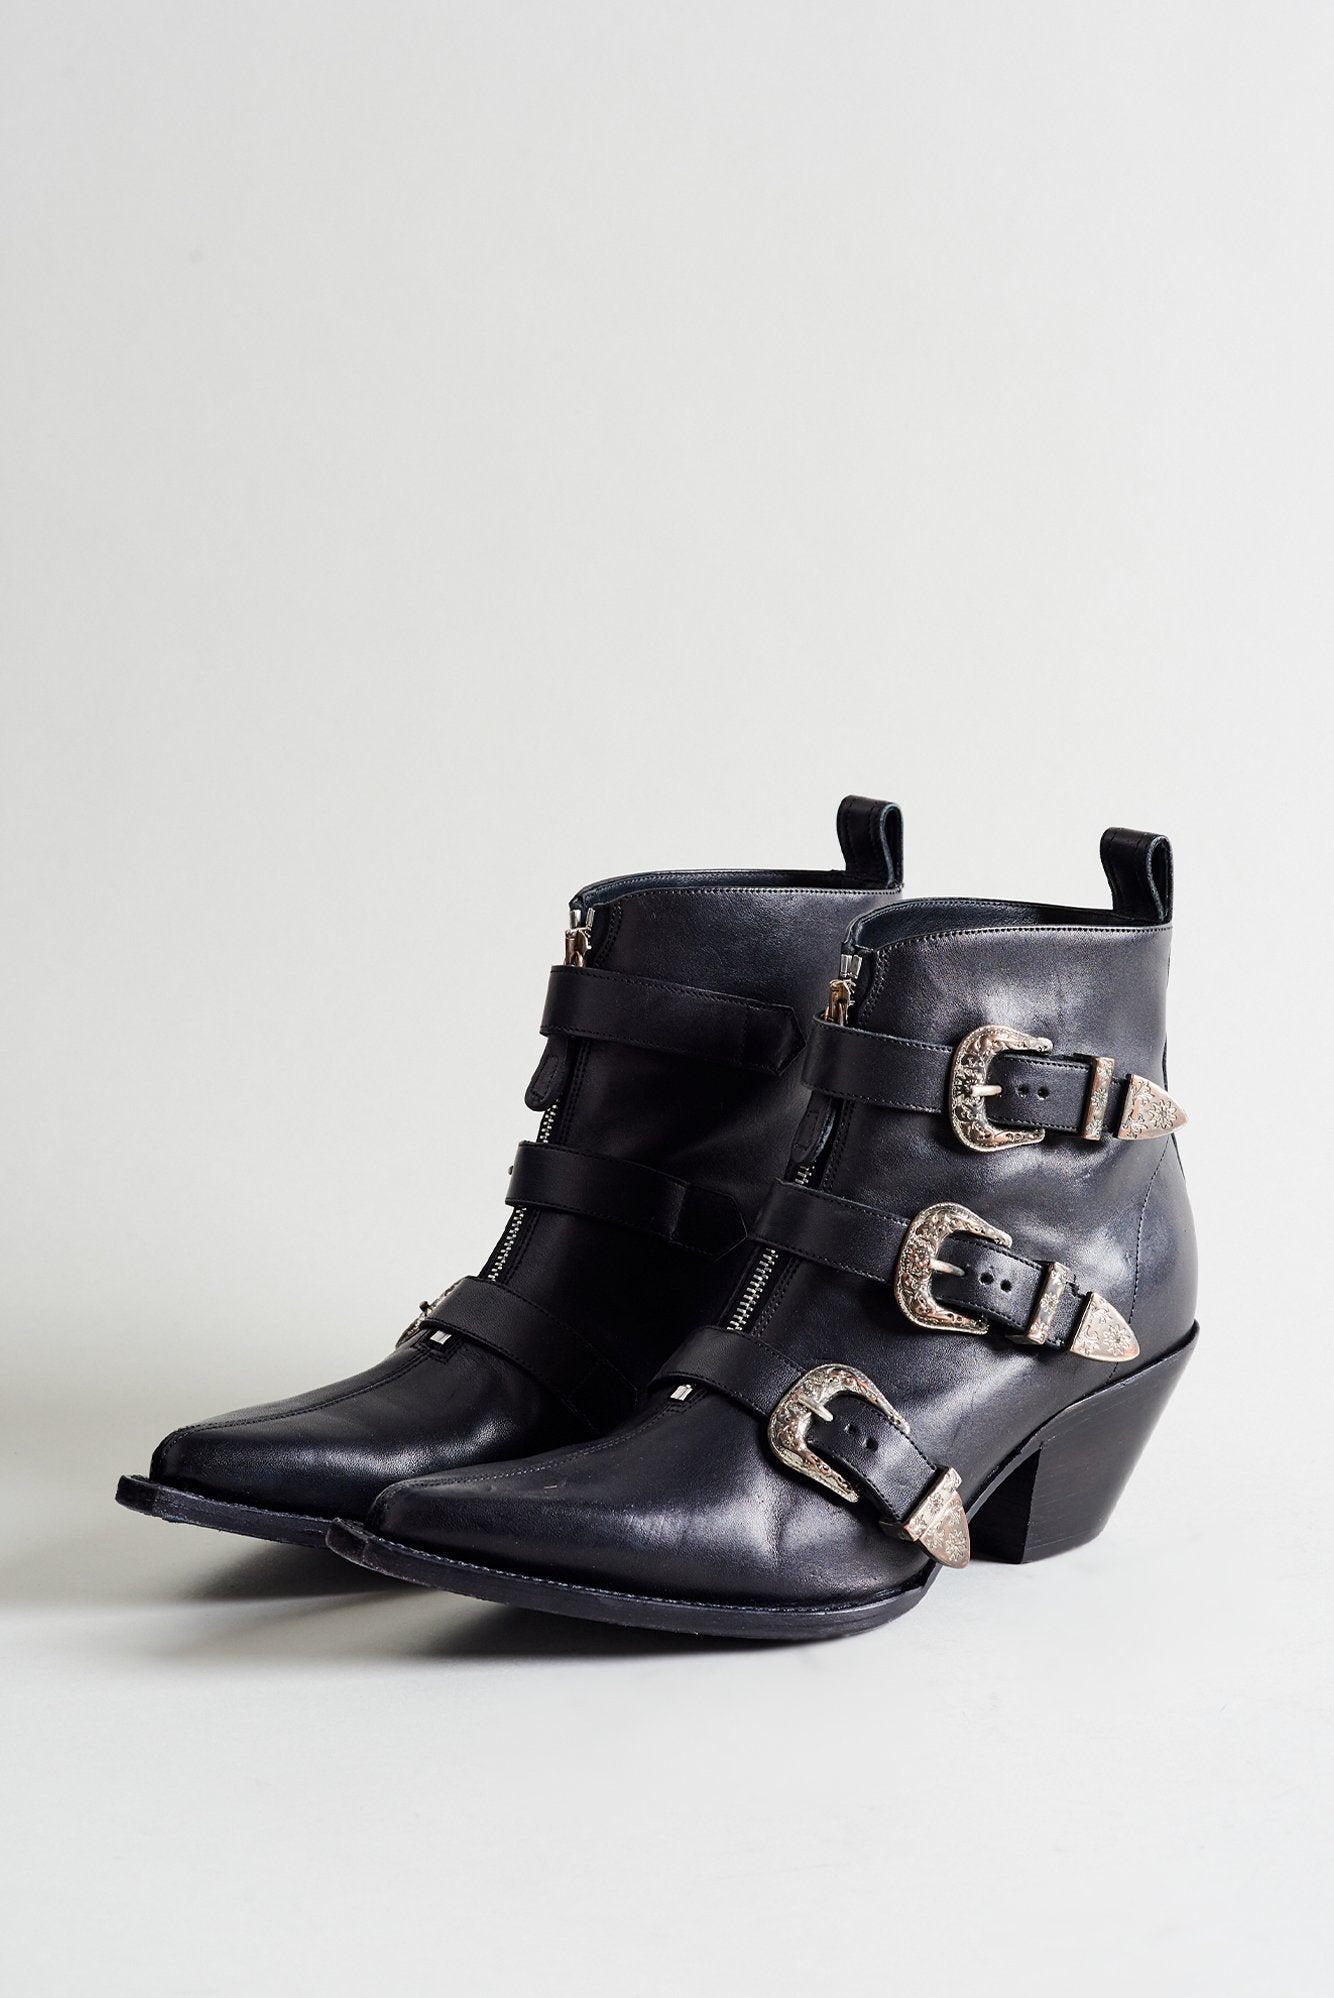 Ankle Three Buckle Boot - Black Leather